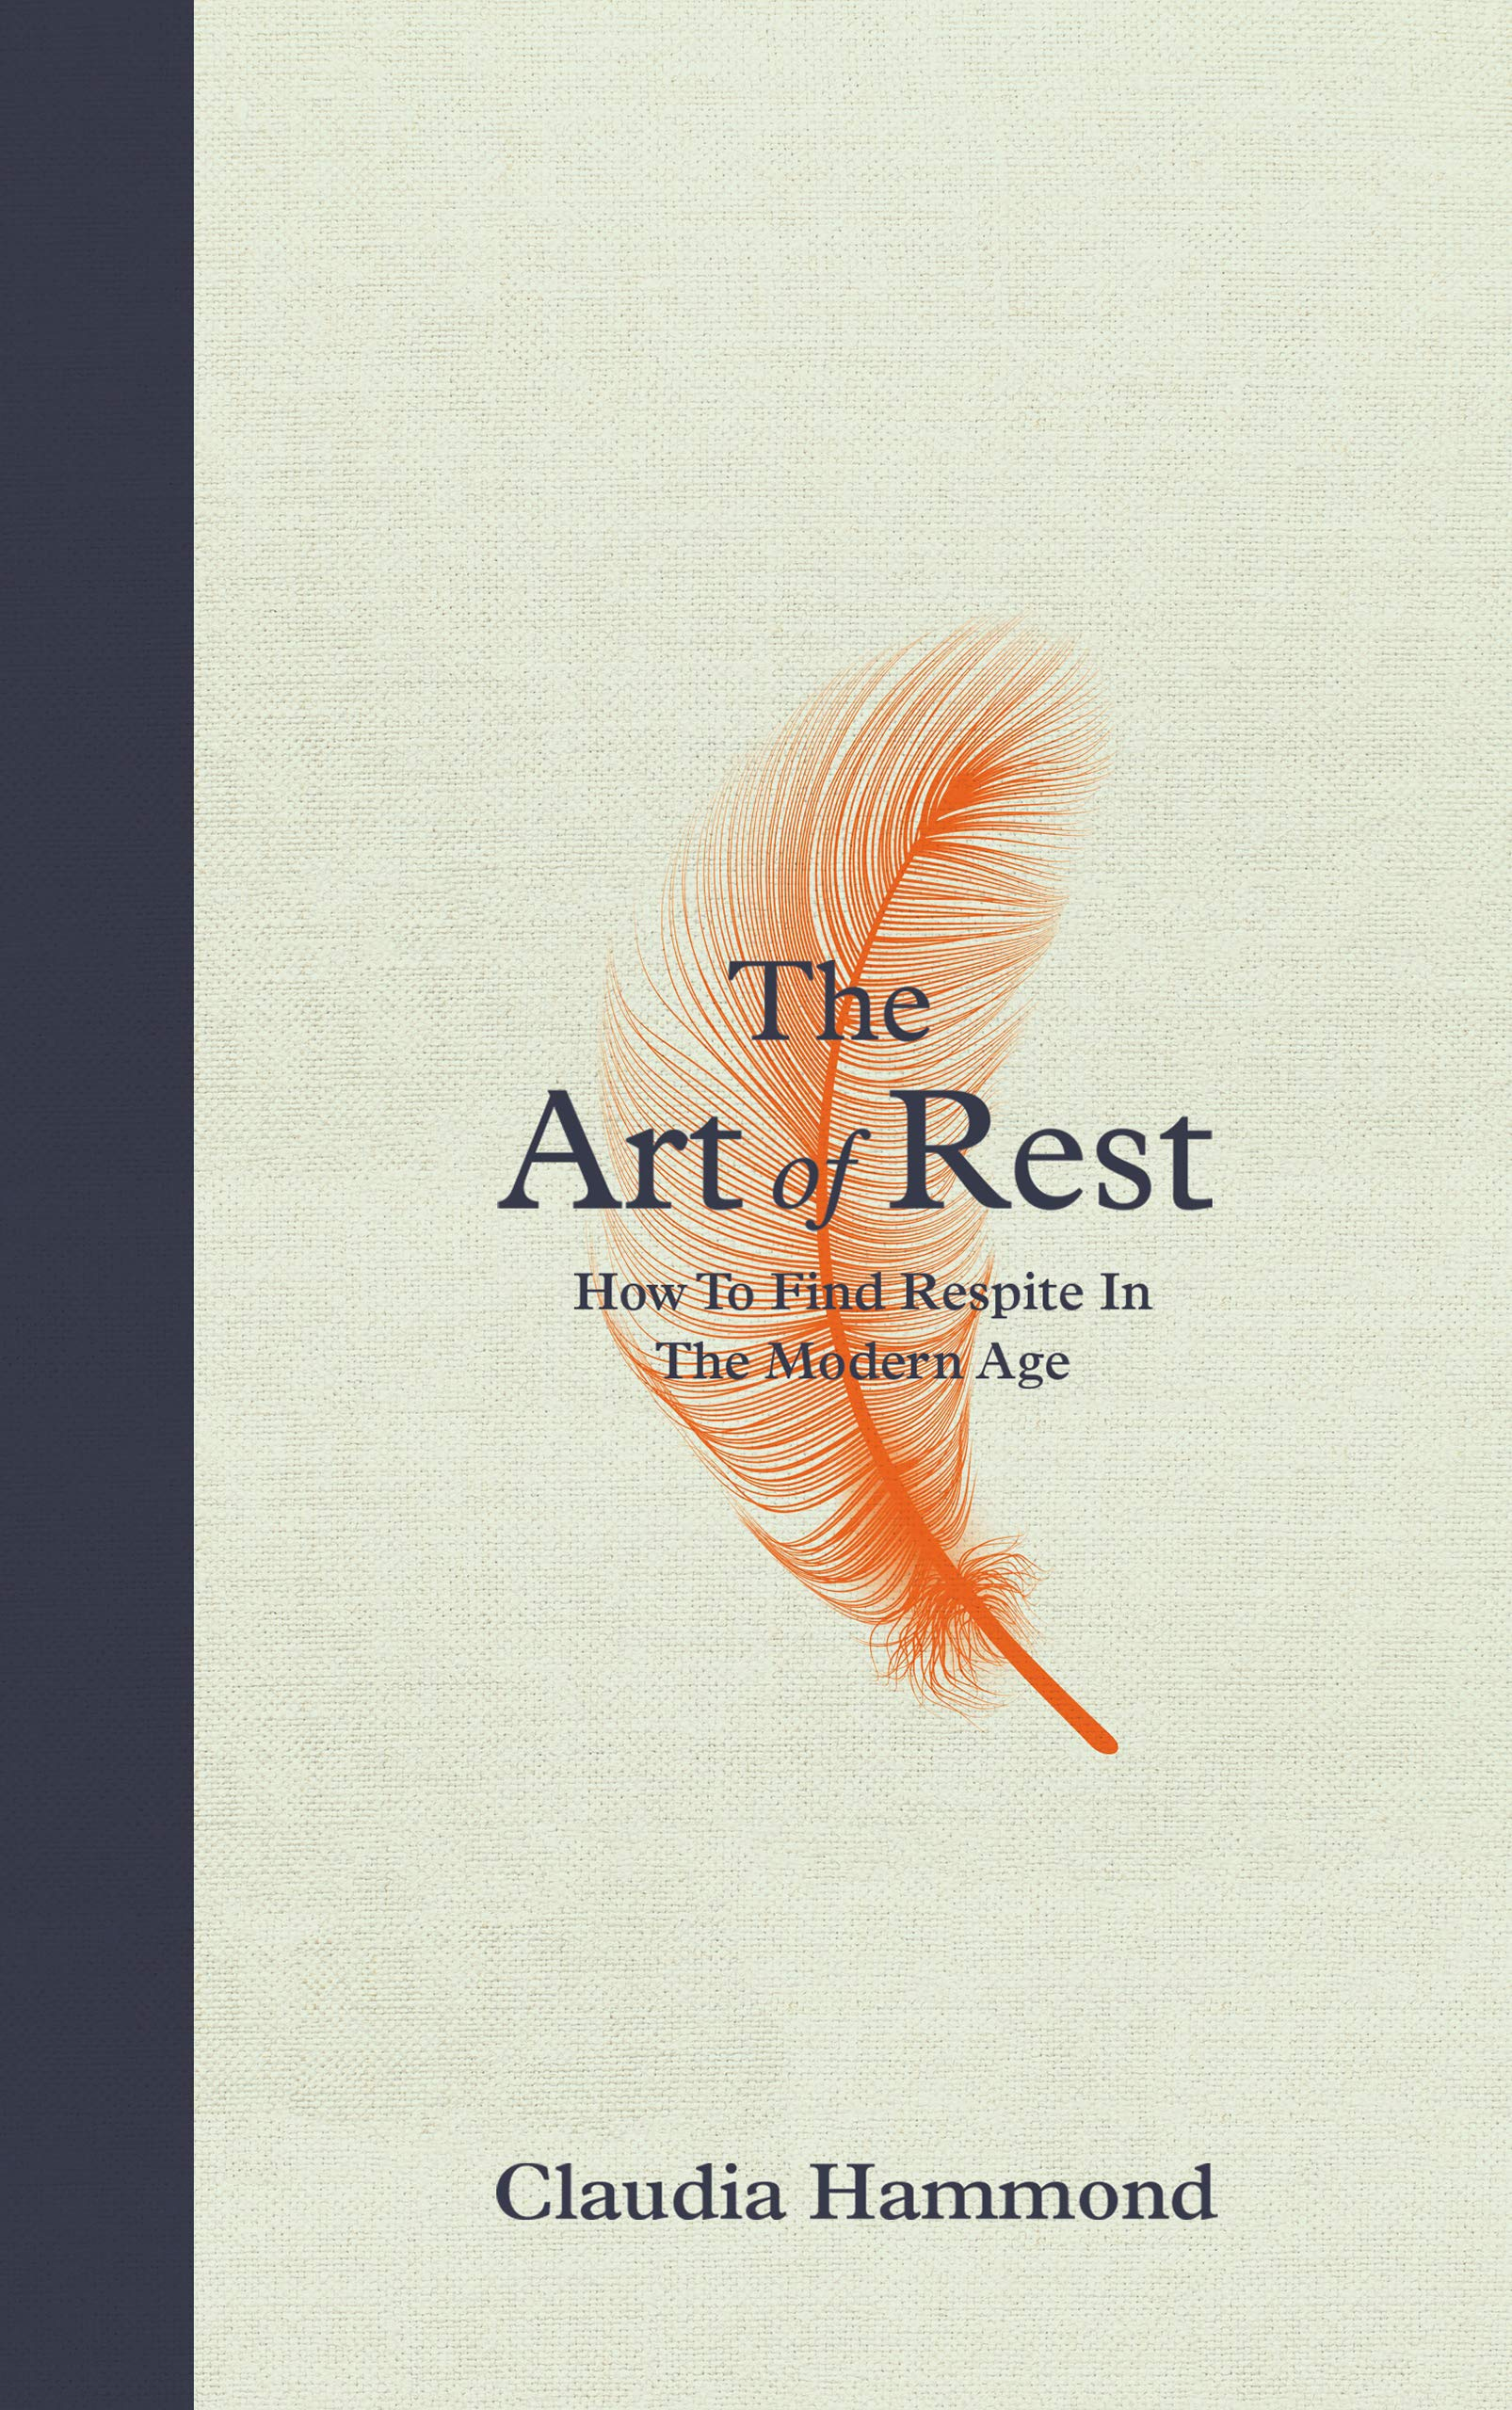 The Art of Rest by Claudia Hammond